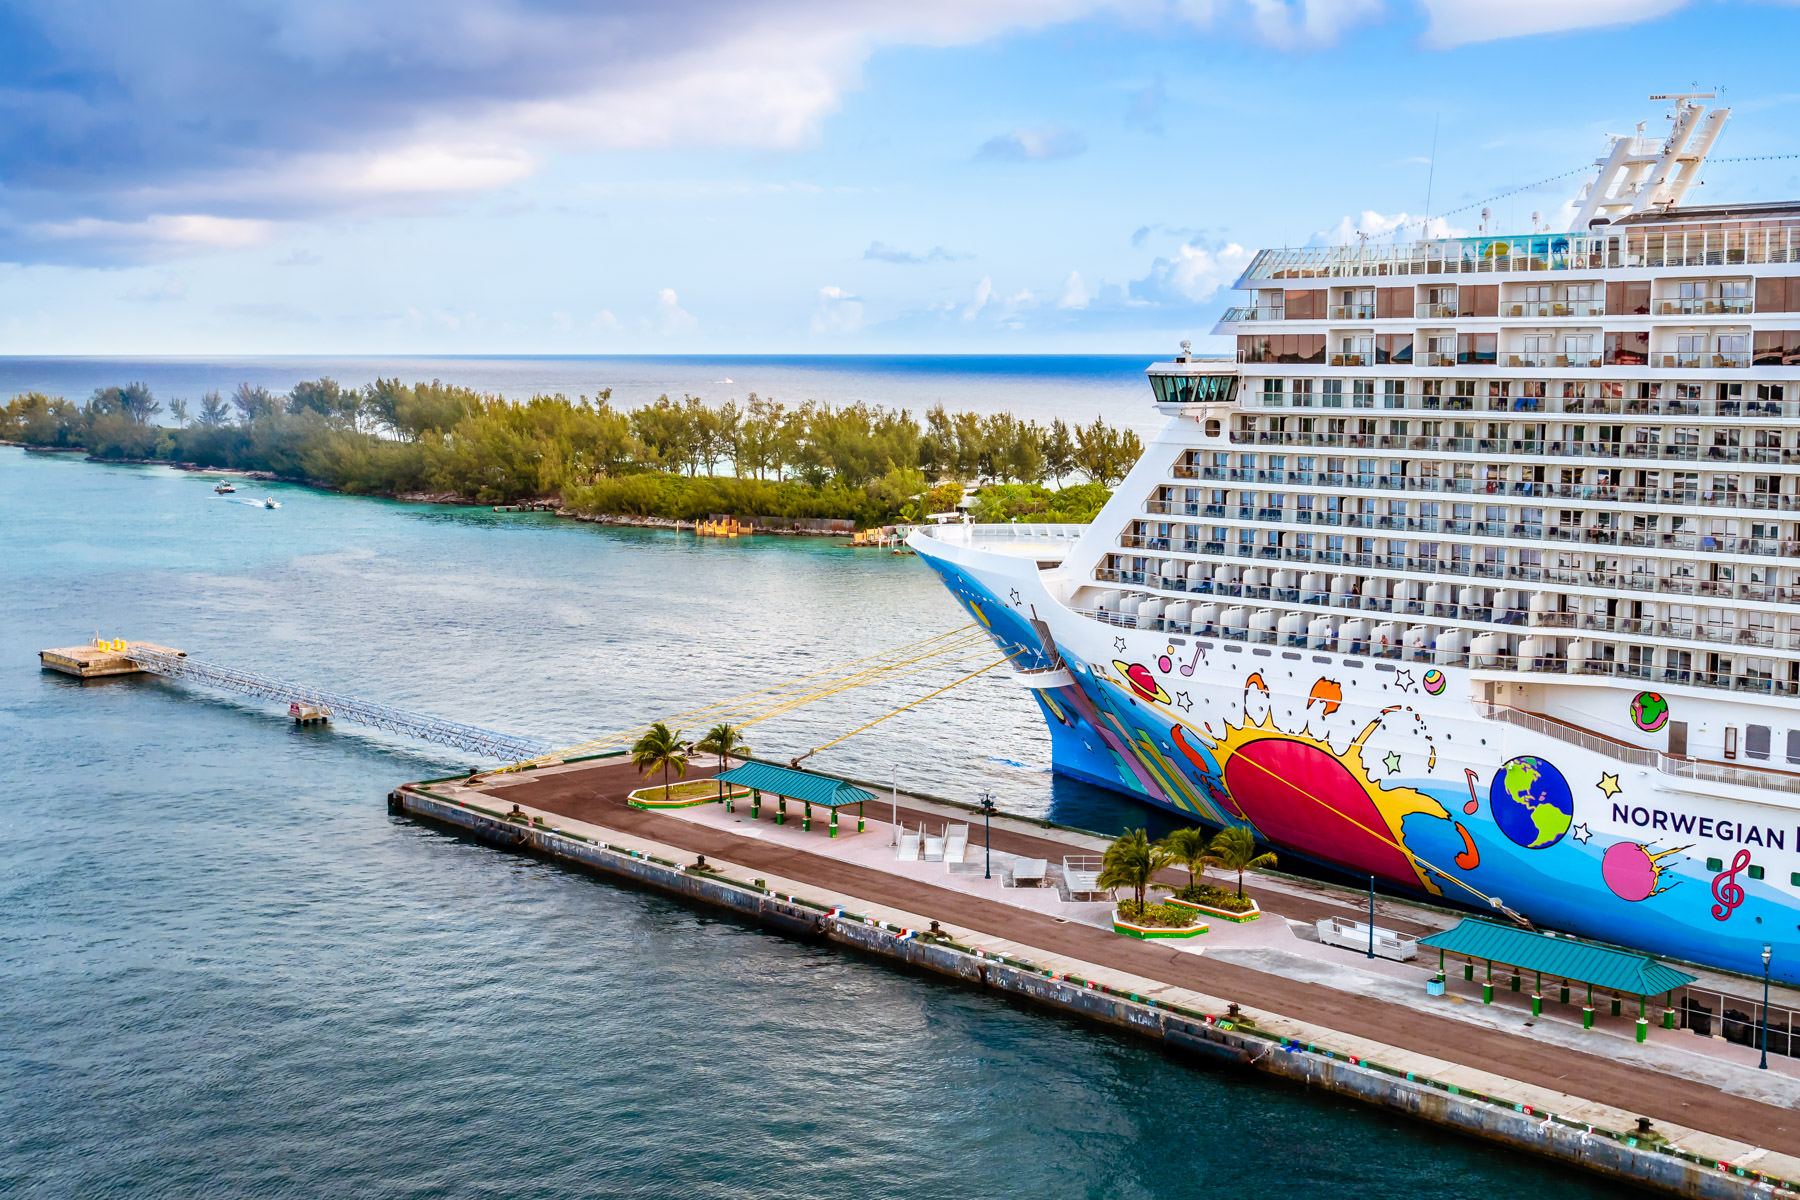 The colorful cruise ship Norwegian Breakaway, docked in Nassau, Bahamas.